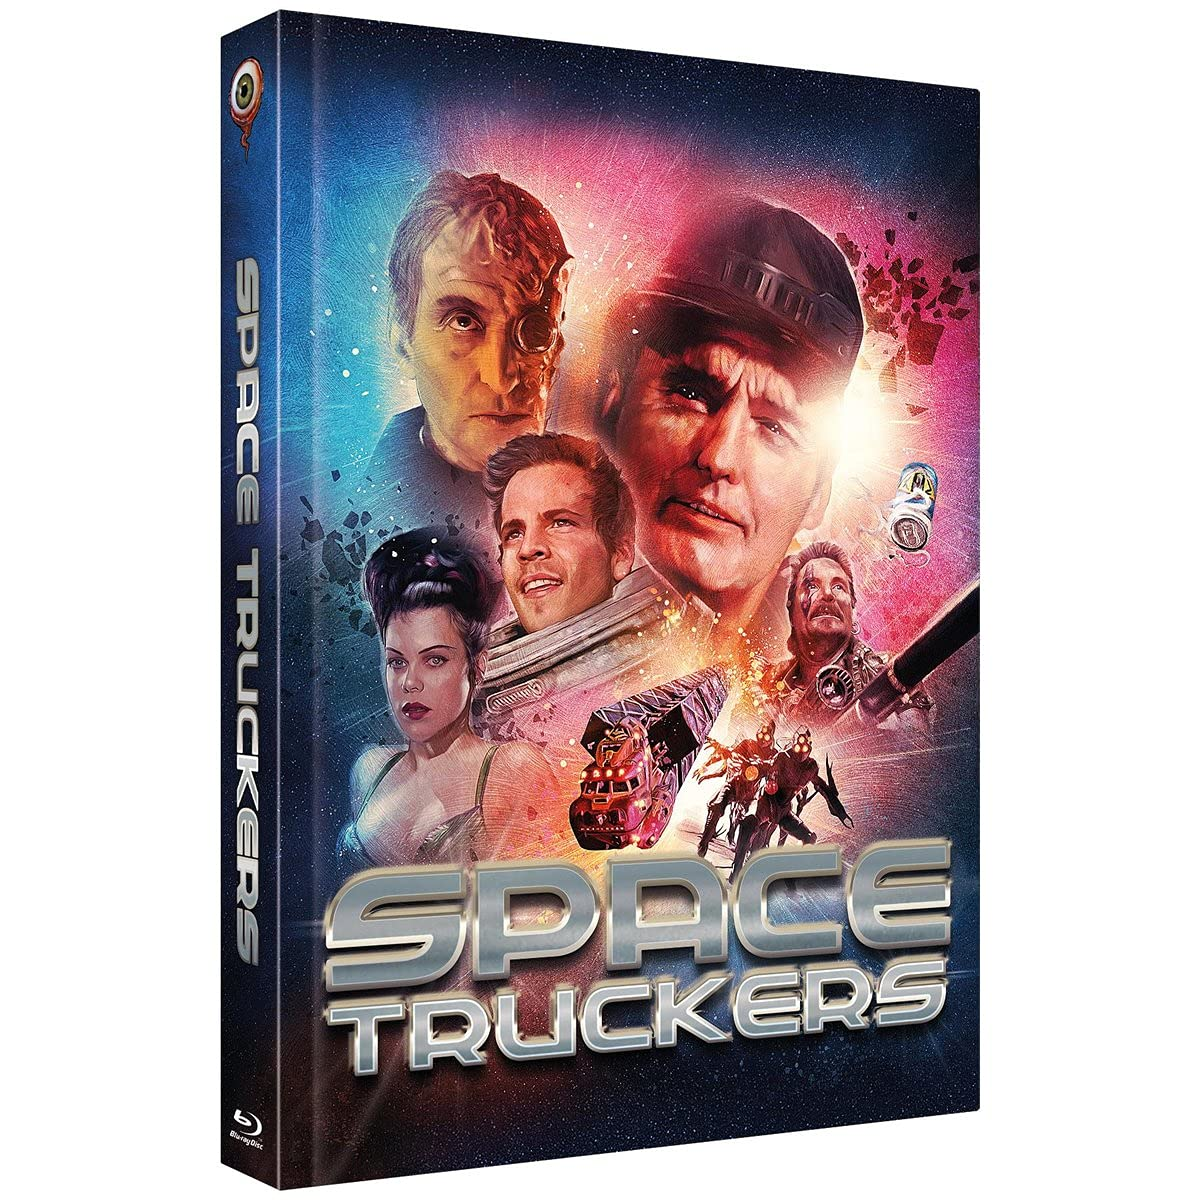 BR+DVD Space Truckers - 2-Disc Limited C ollectors Edition Mediabook (Cover B) - limitiert auf 444 Stk.